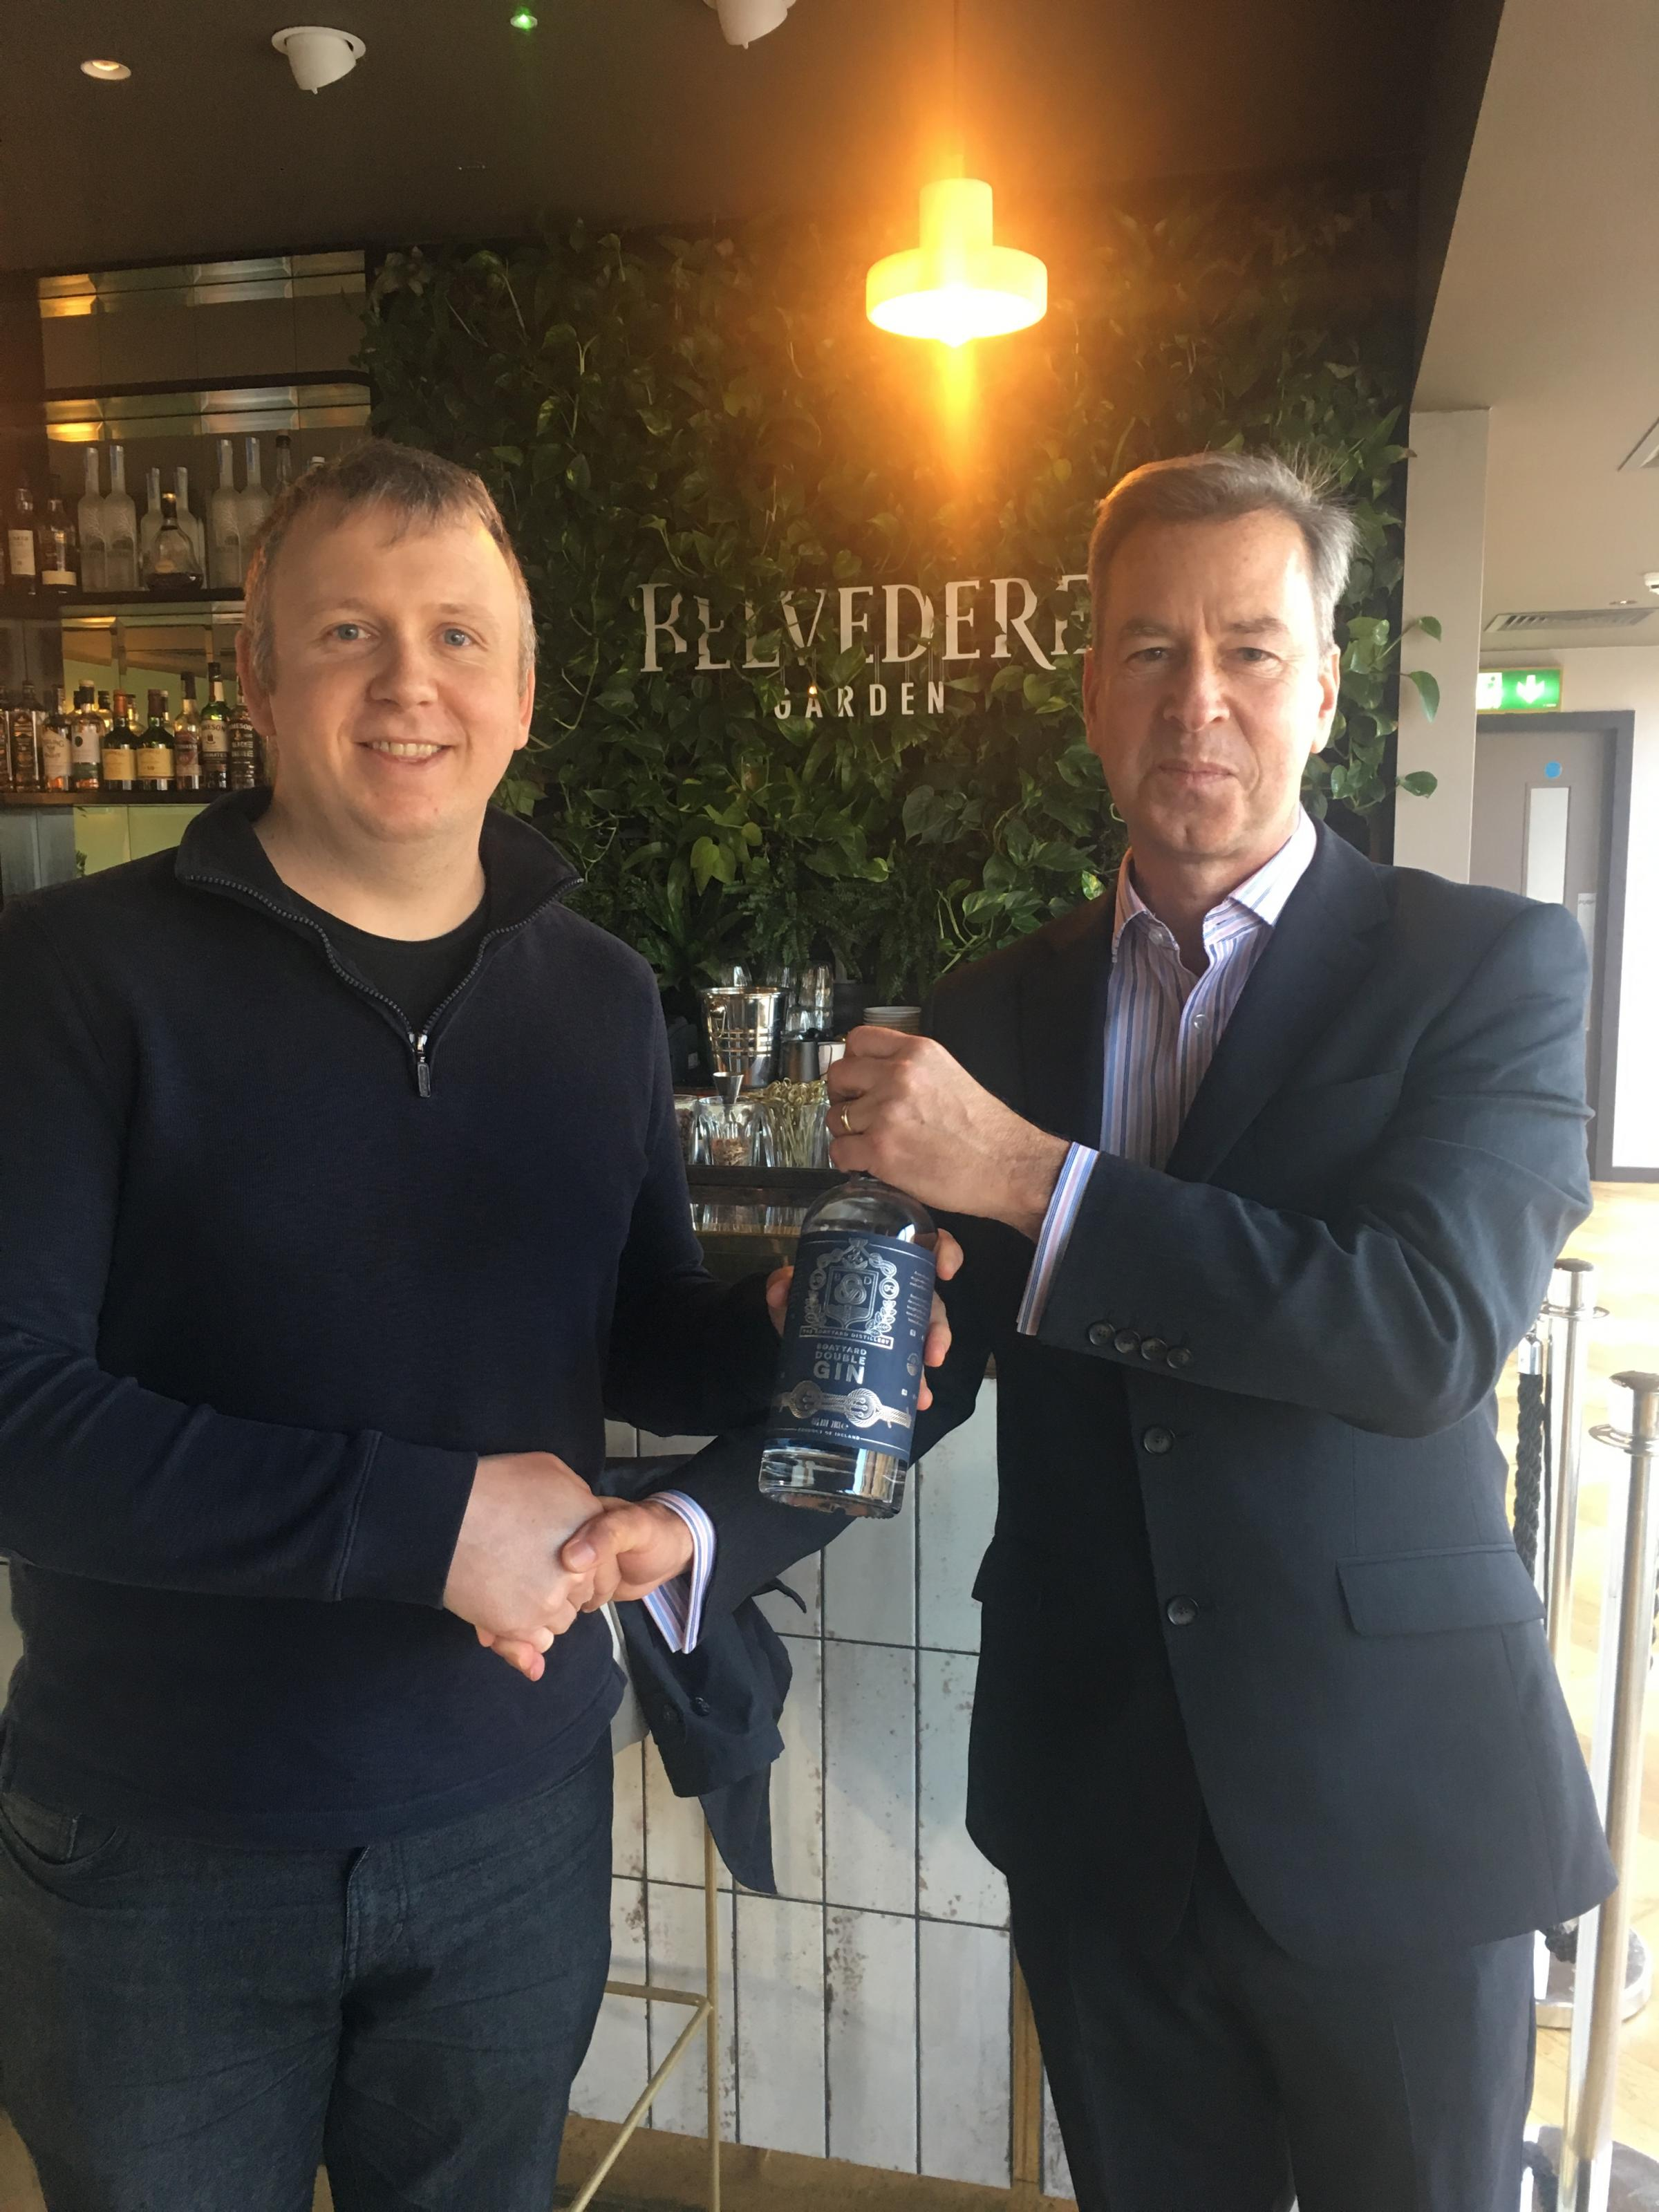 Pictured from left-right are: Joe McGirr, Founder of the Boatyard Distillery and Iain Lees, Managing Director of HannawayCA Corporate Finance.